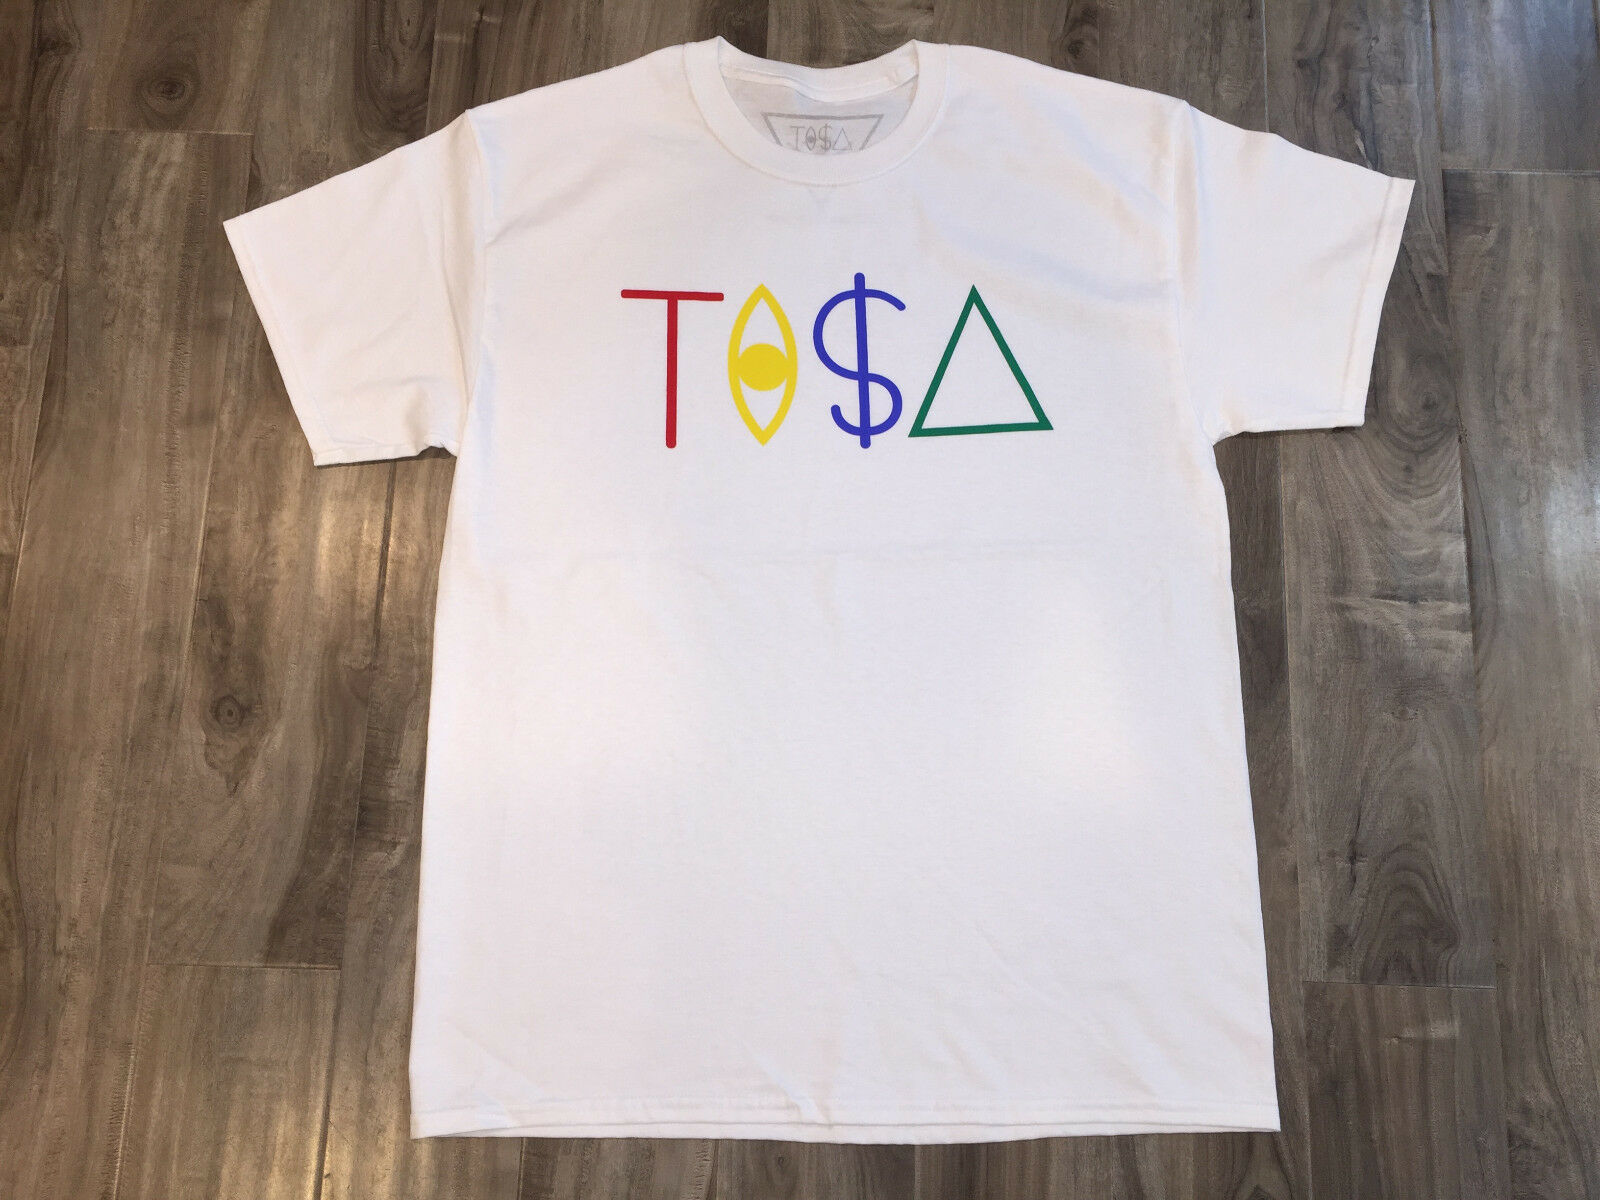 TISA <font><b>T</b></font>-<font><b>SHIRT</b></font> TI$A - WHITE SNAPBACK TYGA LAST KINGS BIG <font><b>SEAN</b></font> Hipster Tees Summer Mens <font><b>T</b></font> <font><b>Shirt</b></font> image